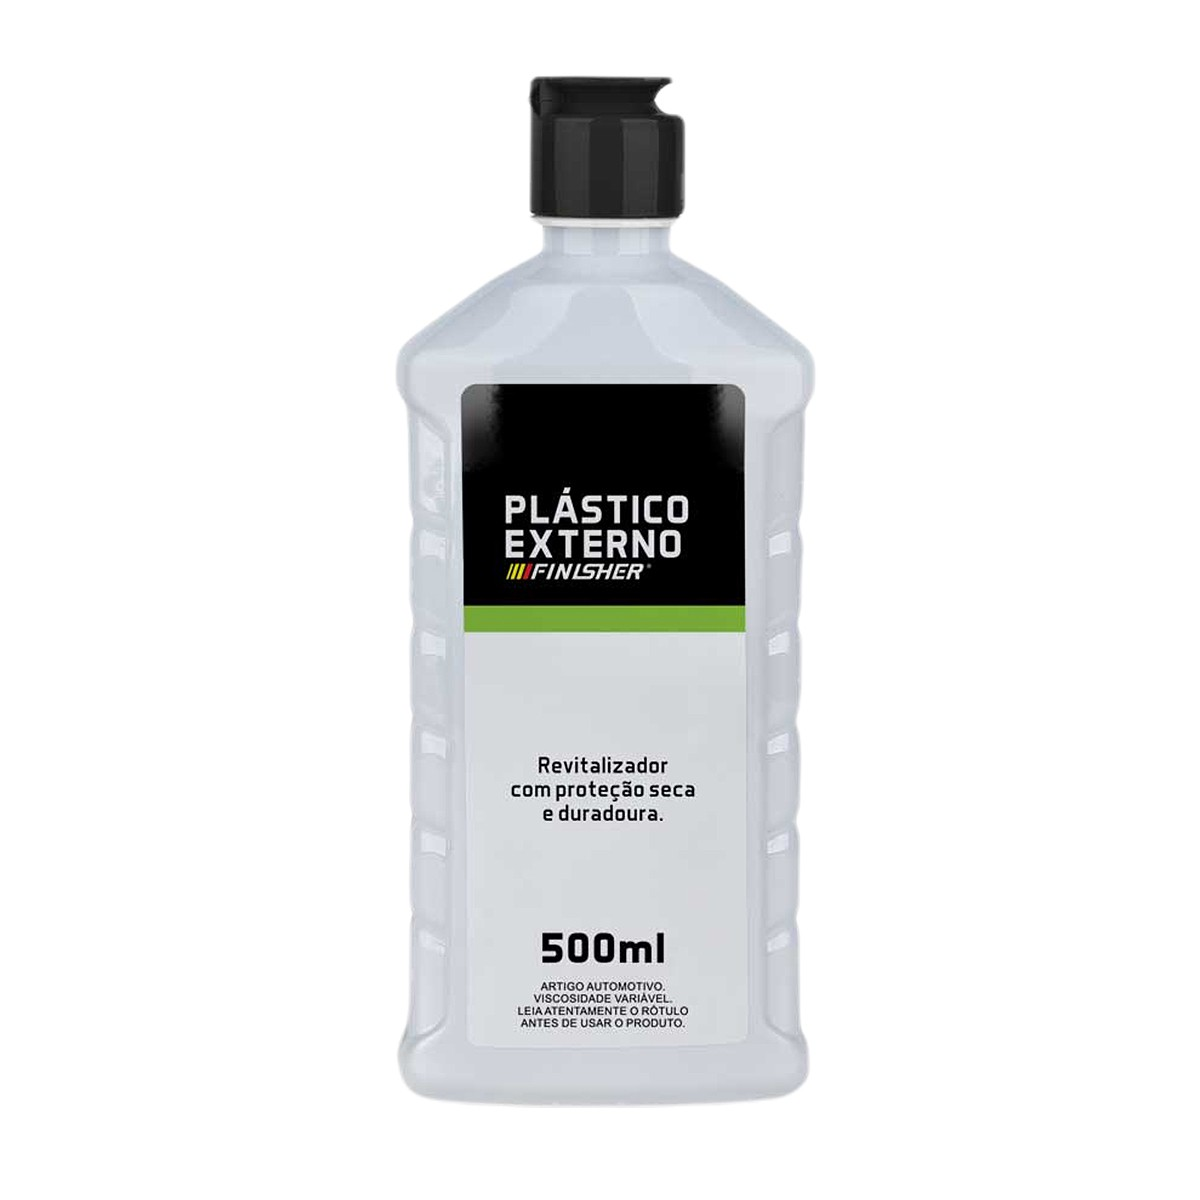 Revitalizador de Plásticos Externos 500ml Finisher